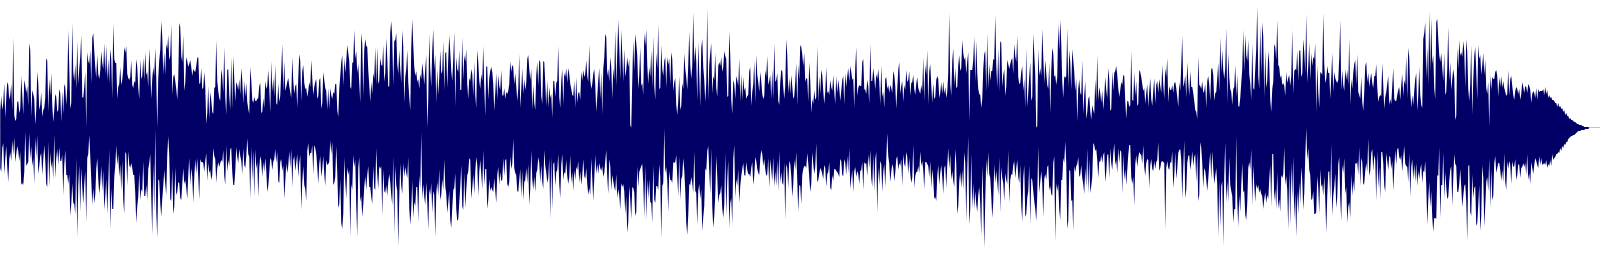 waveform of track #131884